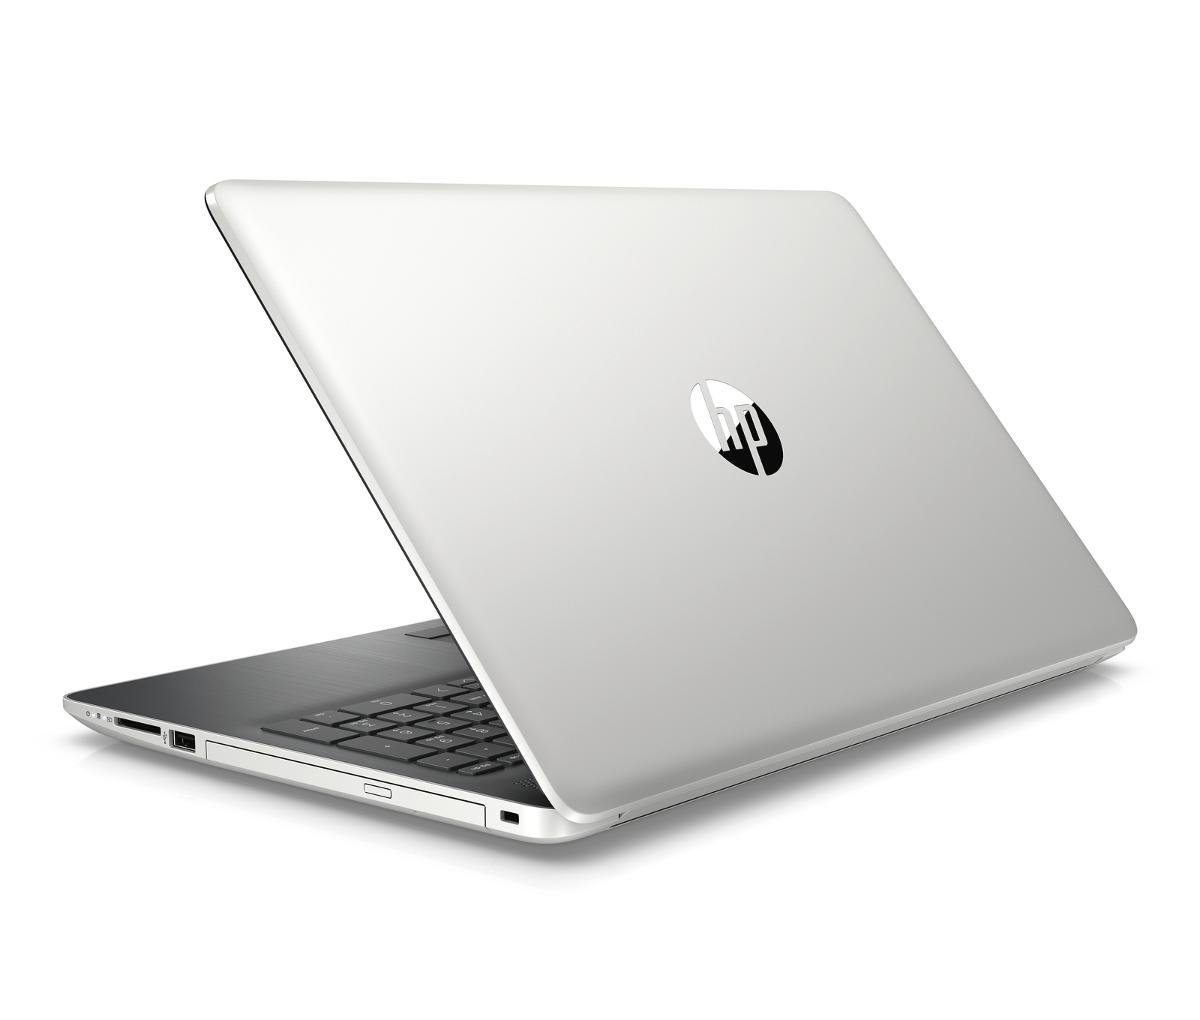 "Laptop HP 15-db0027nw 5RA48EA, Ryzen 3 2200, Int, 8 GB RAM, 15.6"", 128 GB, Windows 10 Home"